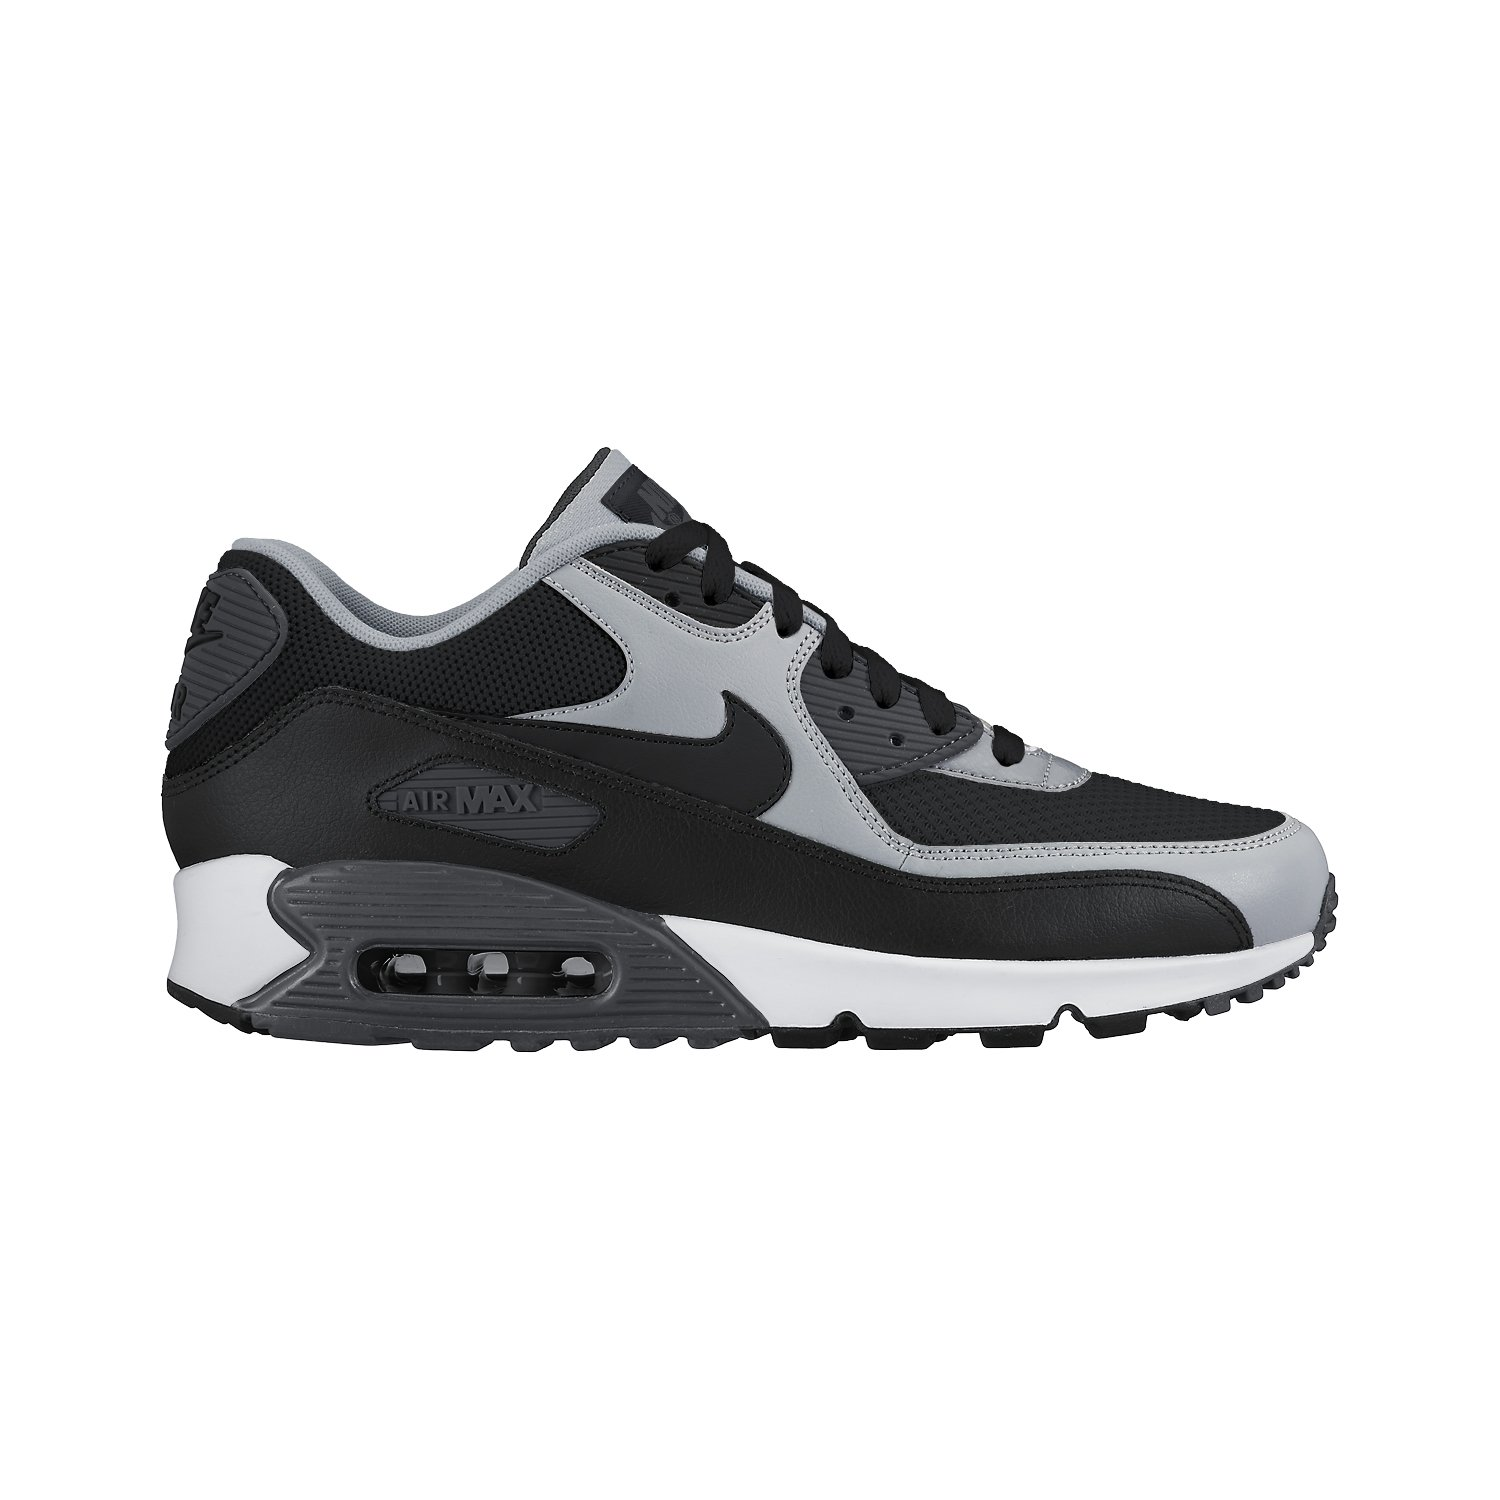 detailed look 781ad f78a9 Galleon - Nike Men s Air Max 90 Essential Trainers, Negro Gris  (Black Black-Wolf Grey-Anthrct), 9 UK